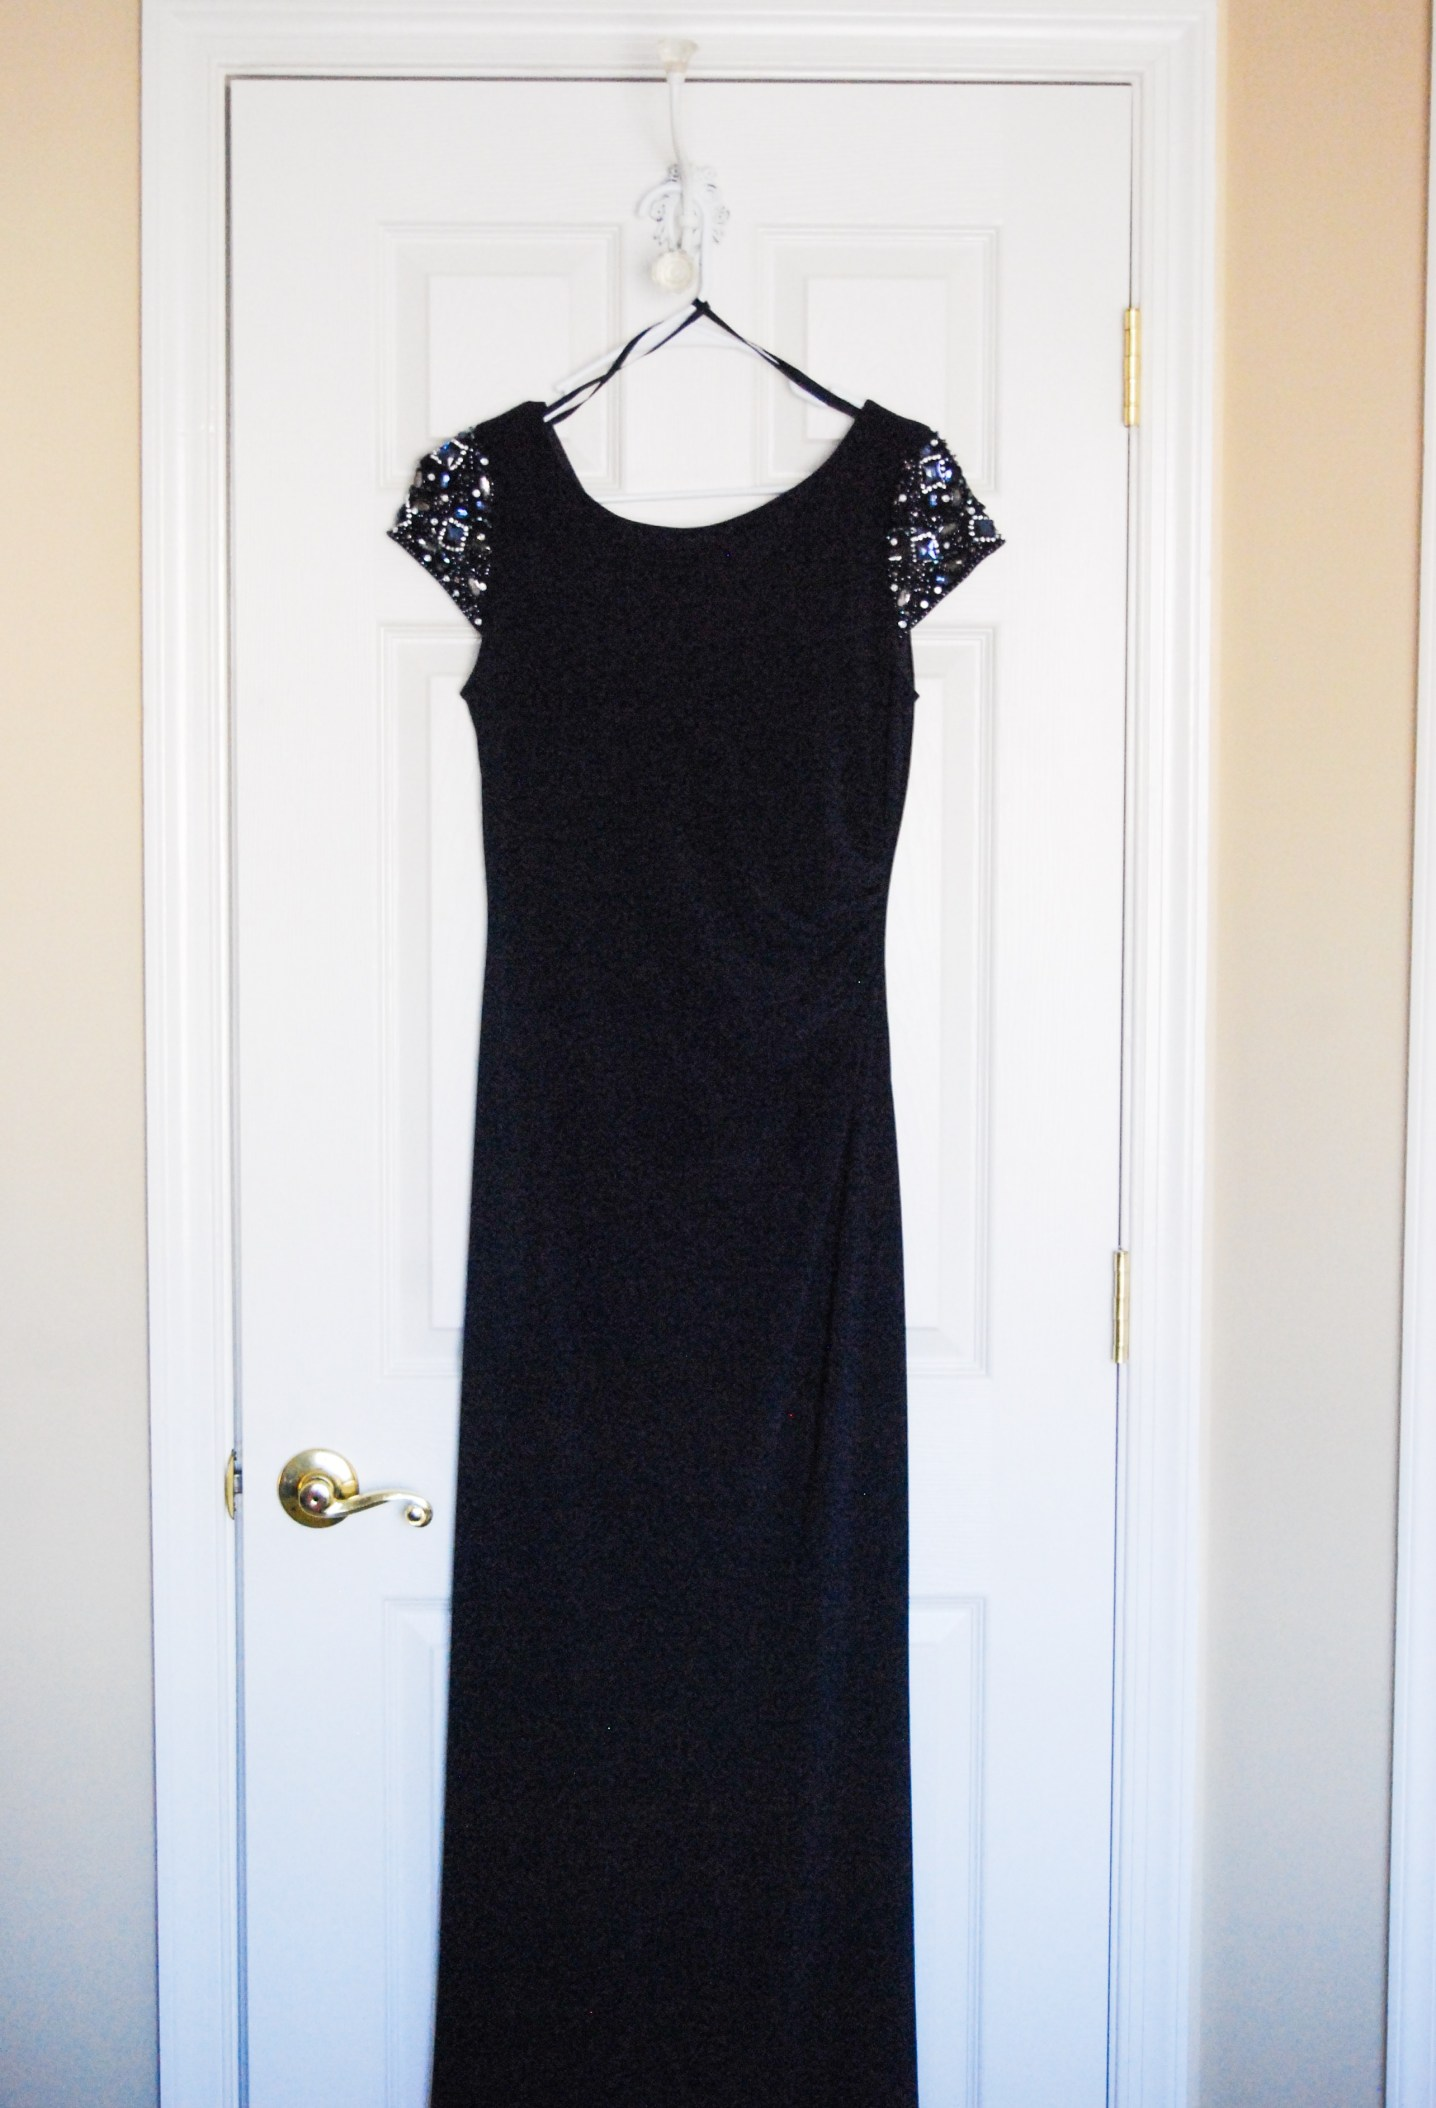 2015 Conference Dresses | Breezing Through